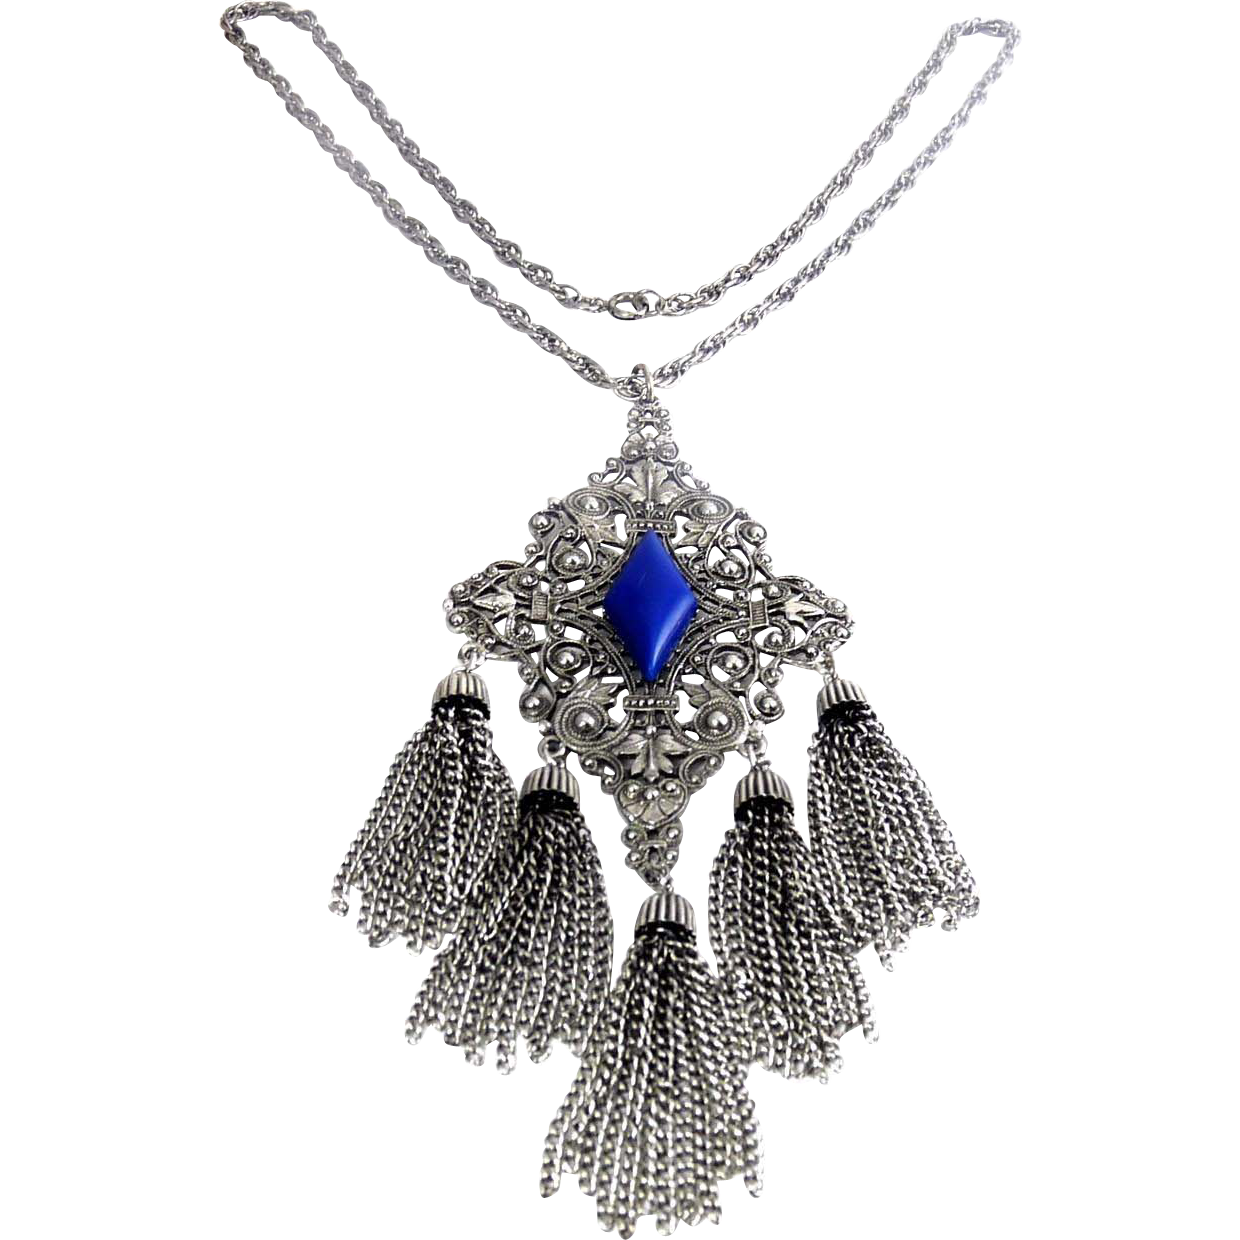 Vintage Big Rococo Medallion Pendant with Tassels & Lapis Glass, Necklace